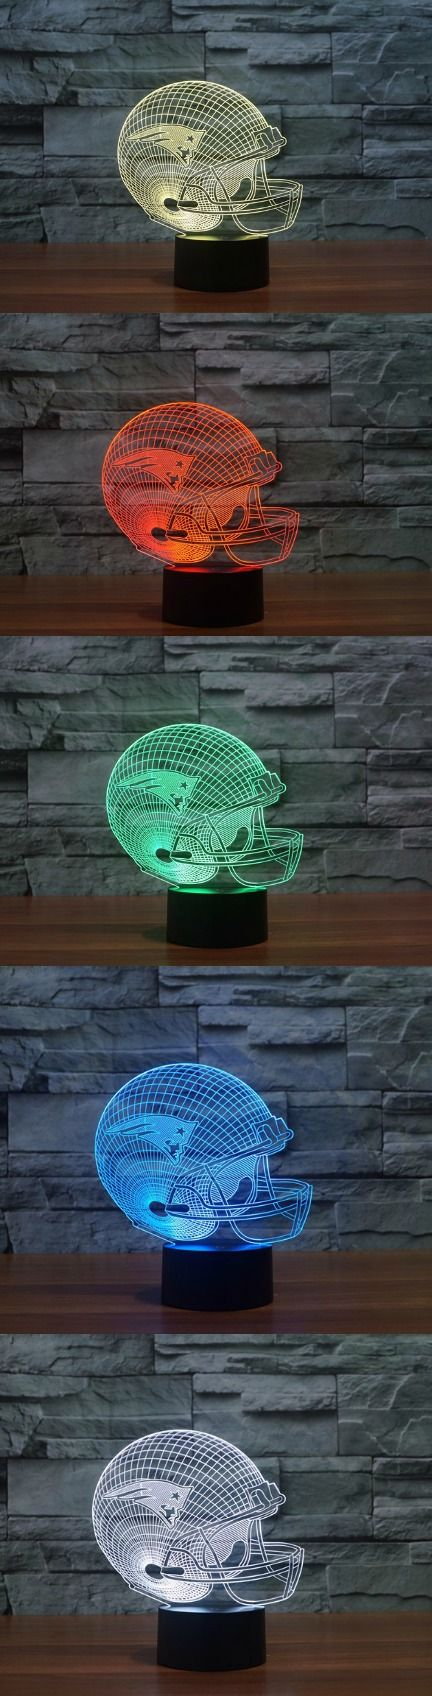 England Patriots Football Caps Helmet LED Table Lamp! Click The Image To Buy It Now or Tag Someone You Want To Buy This For. #football